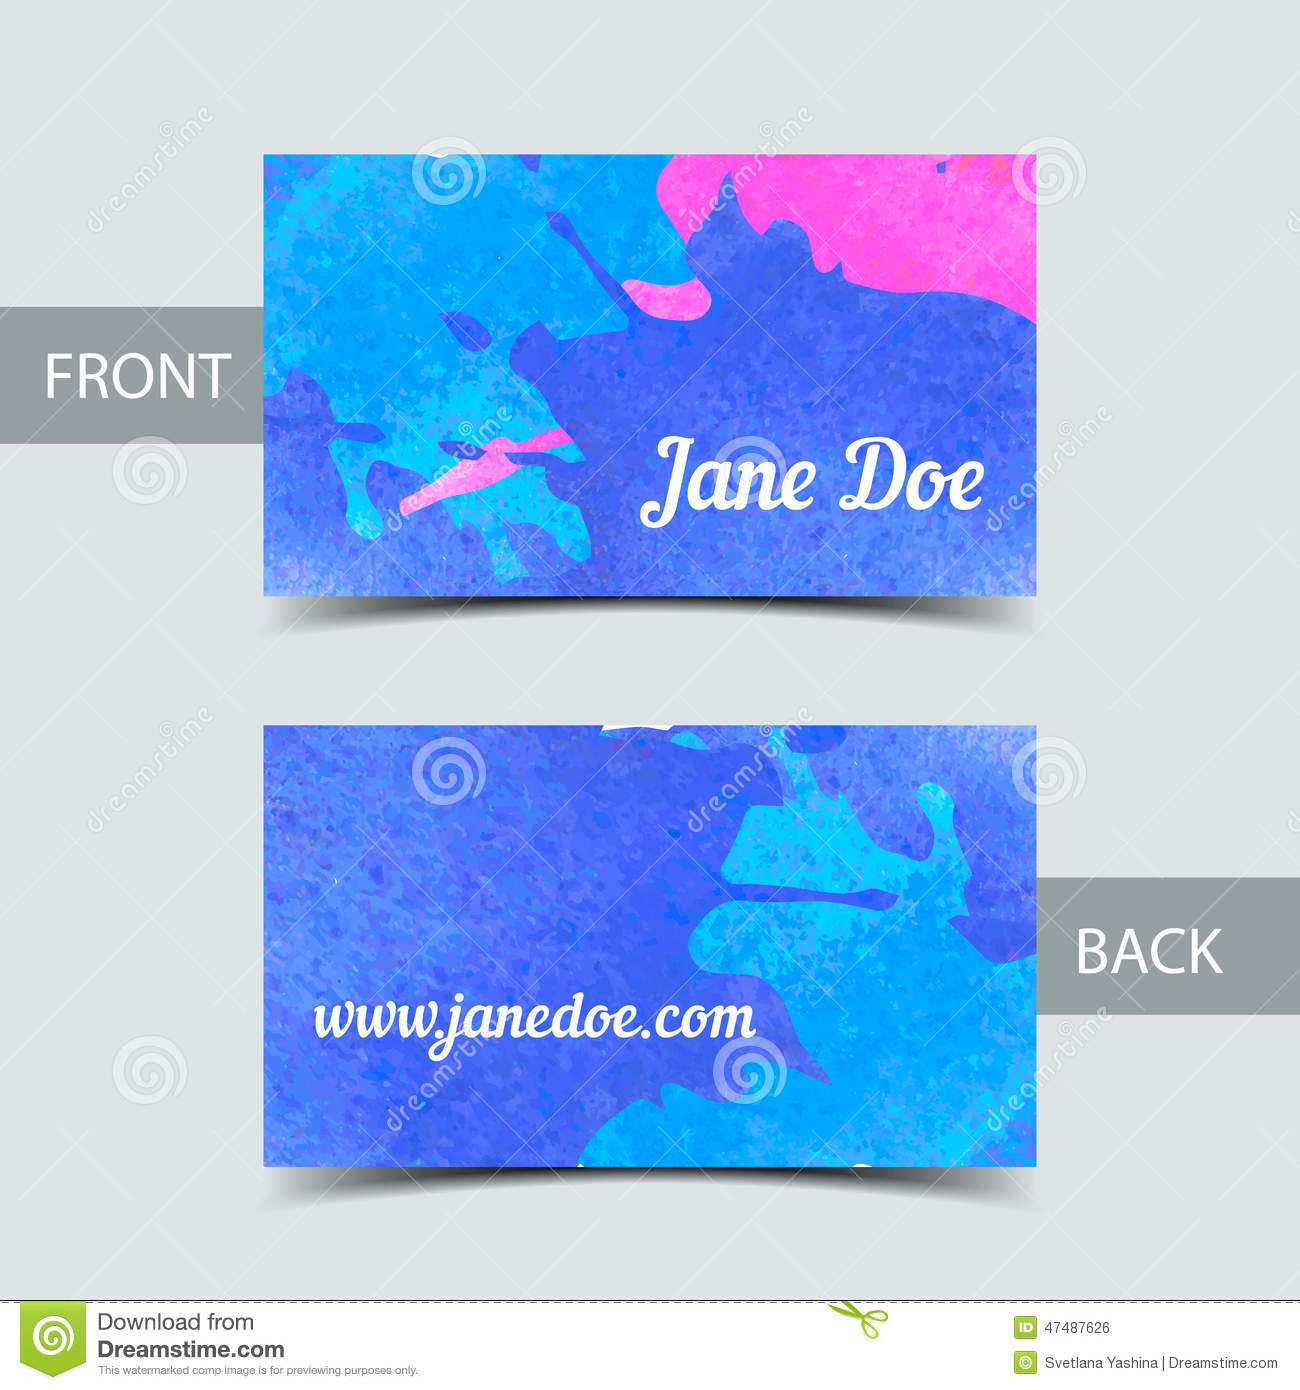 business card ai template - 28 images - business card vector ...